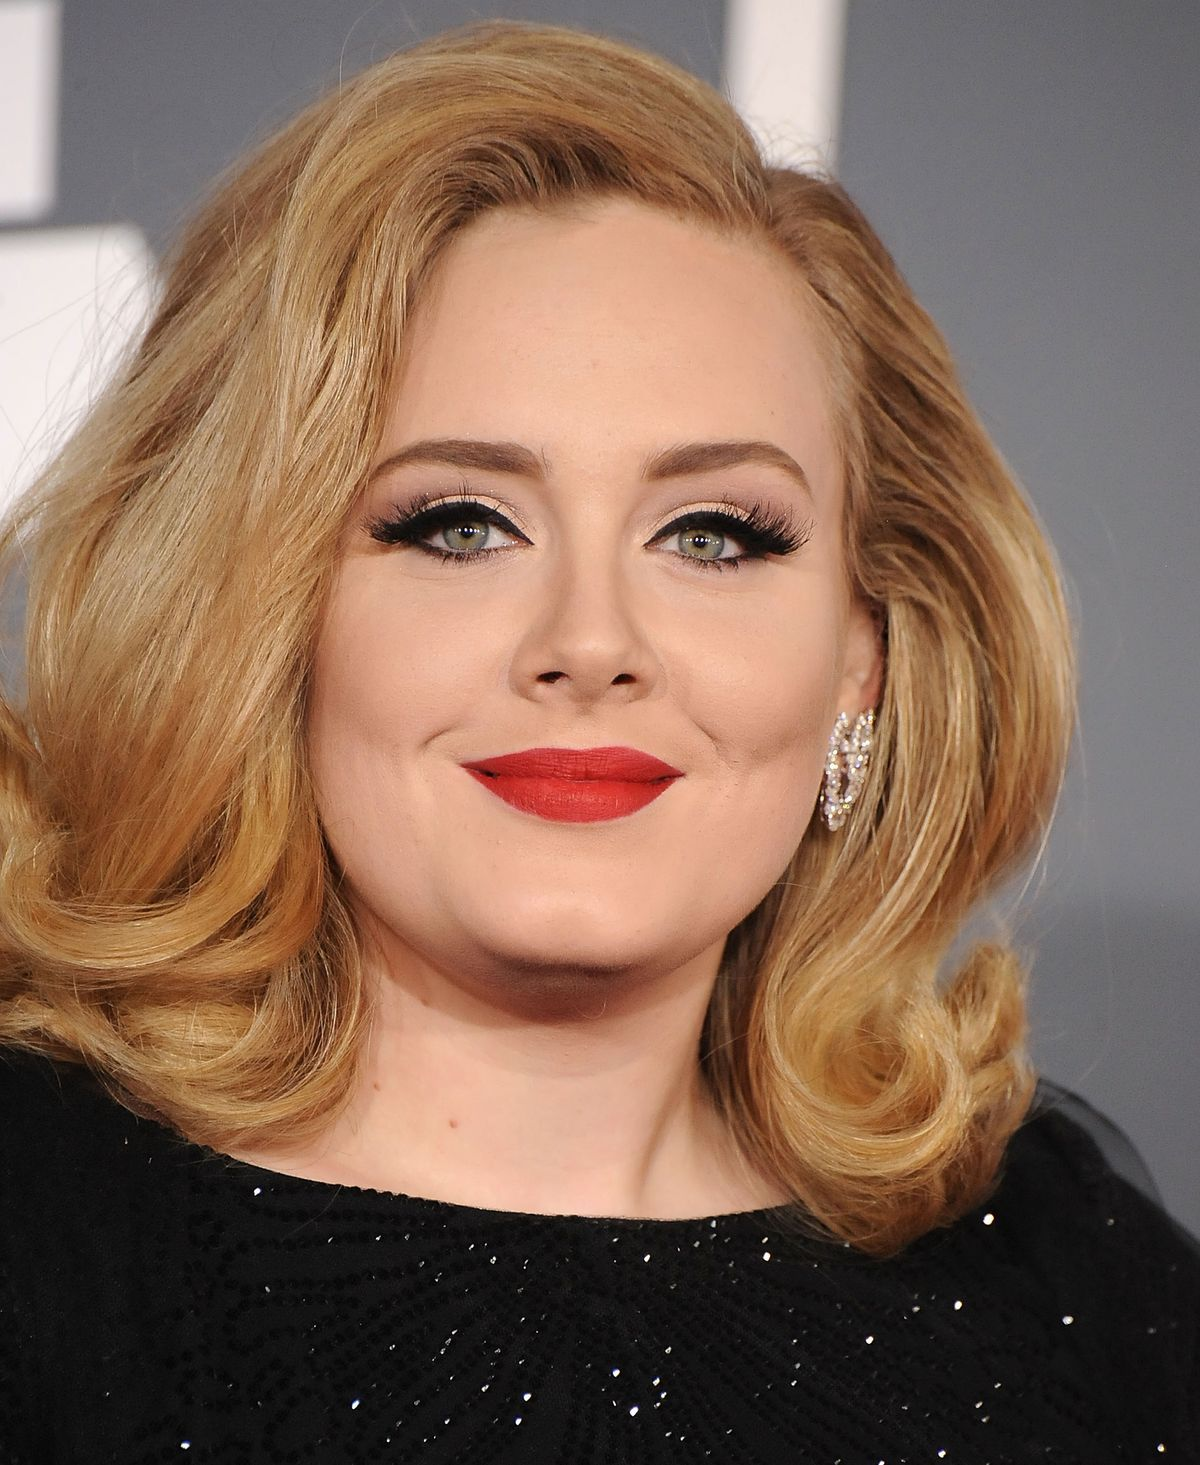 Adele Hair Style: Classic Beauty on the Red Carpet